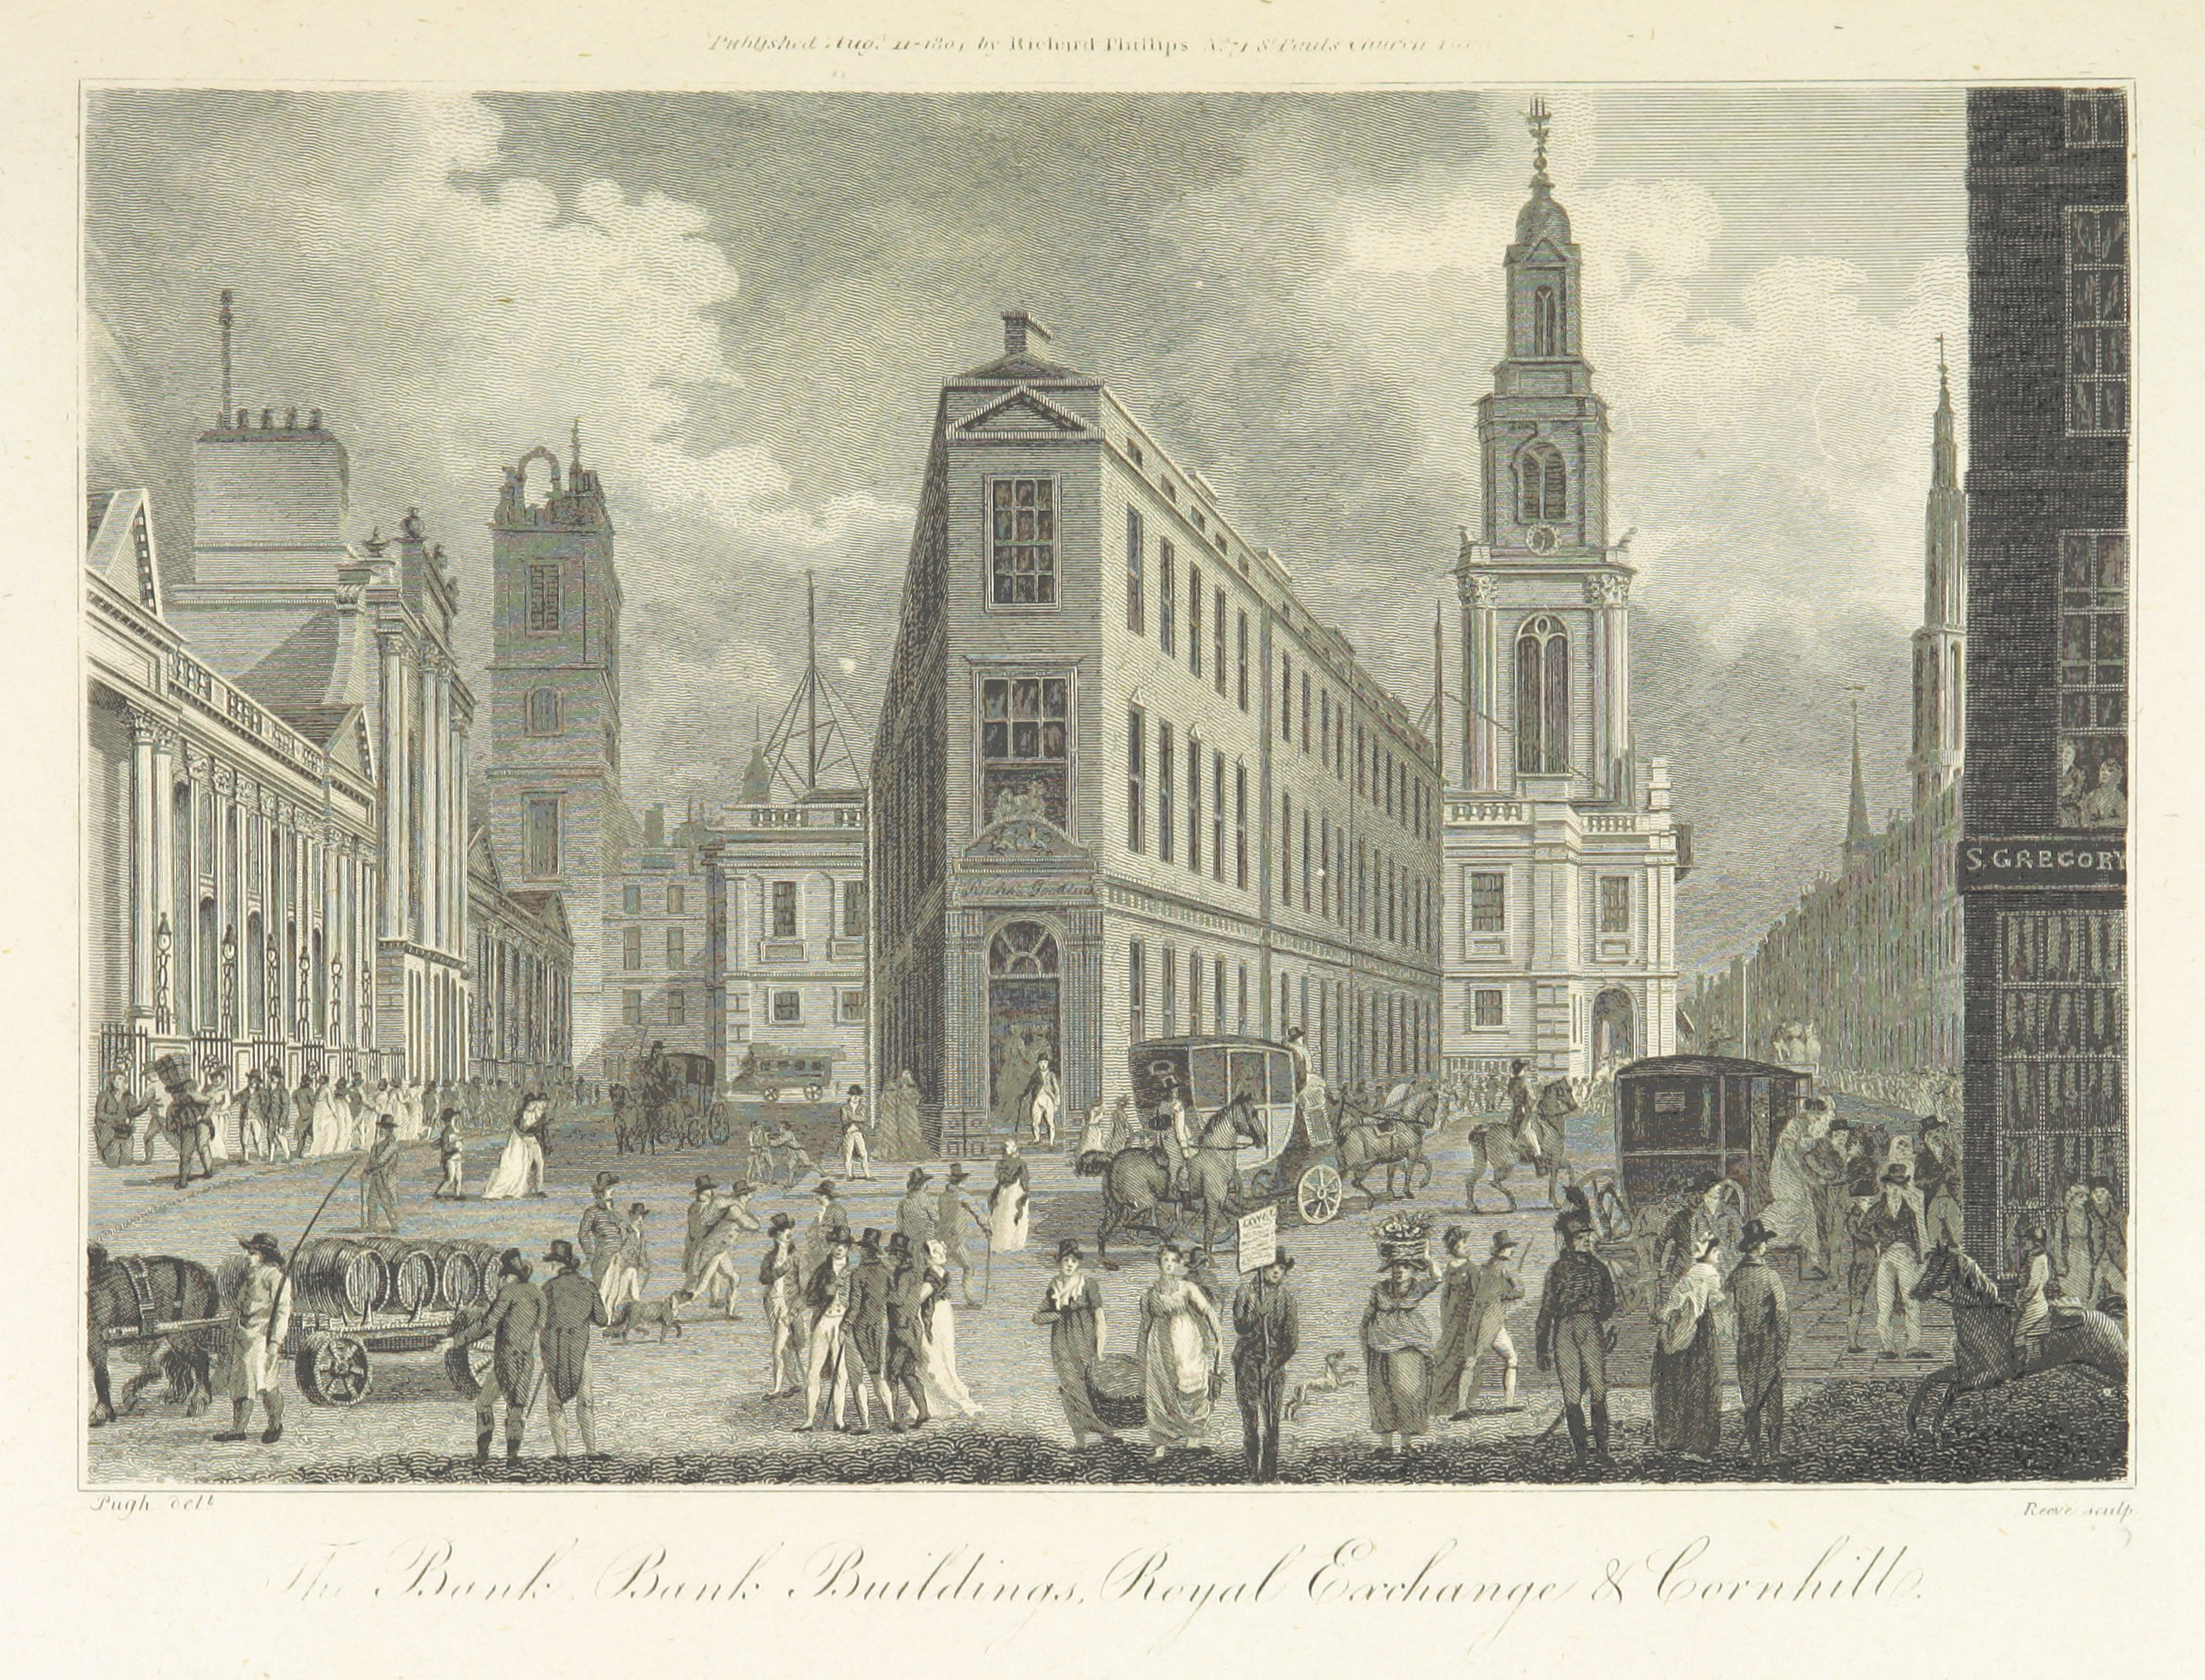 Phillips(1804)_p333_-_The_Bank,_Bank_Buildings,_Royal_Exchange_and_Cornhill